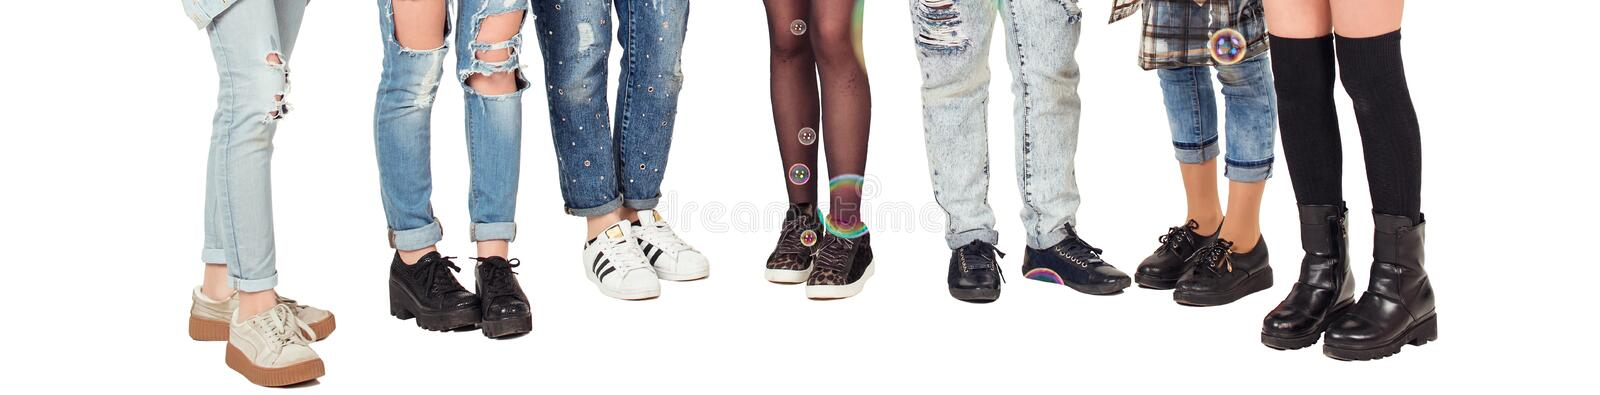 Teenagers girls have fun together with bubble. Stylish teens legs isolated on white. Birthday party with bubble. Group of school g royalty free stock photography